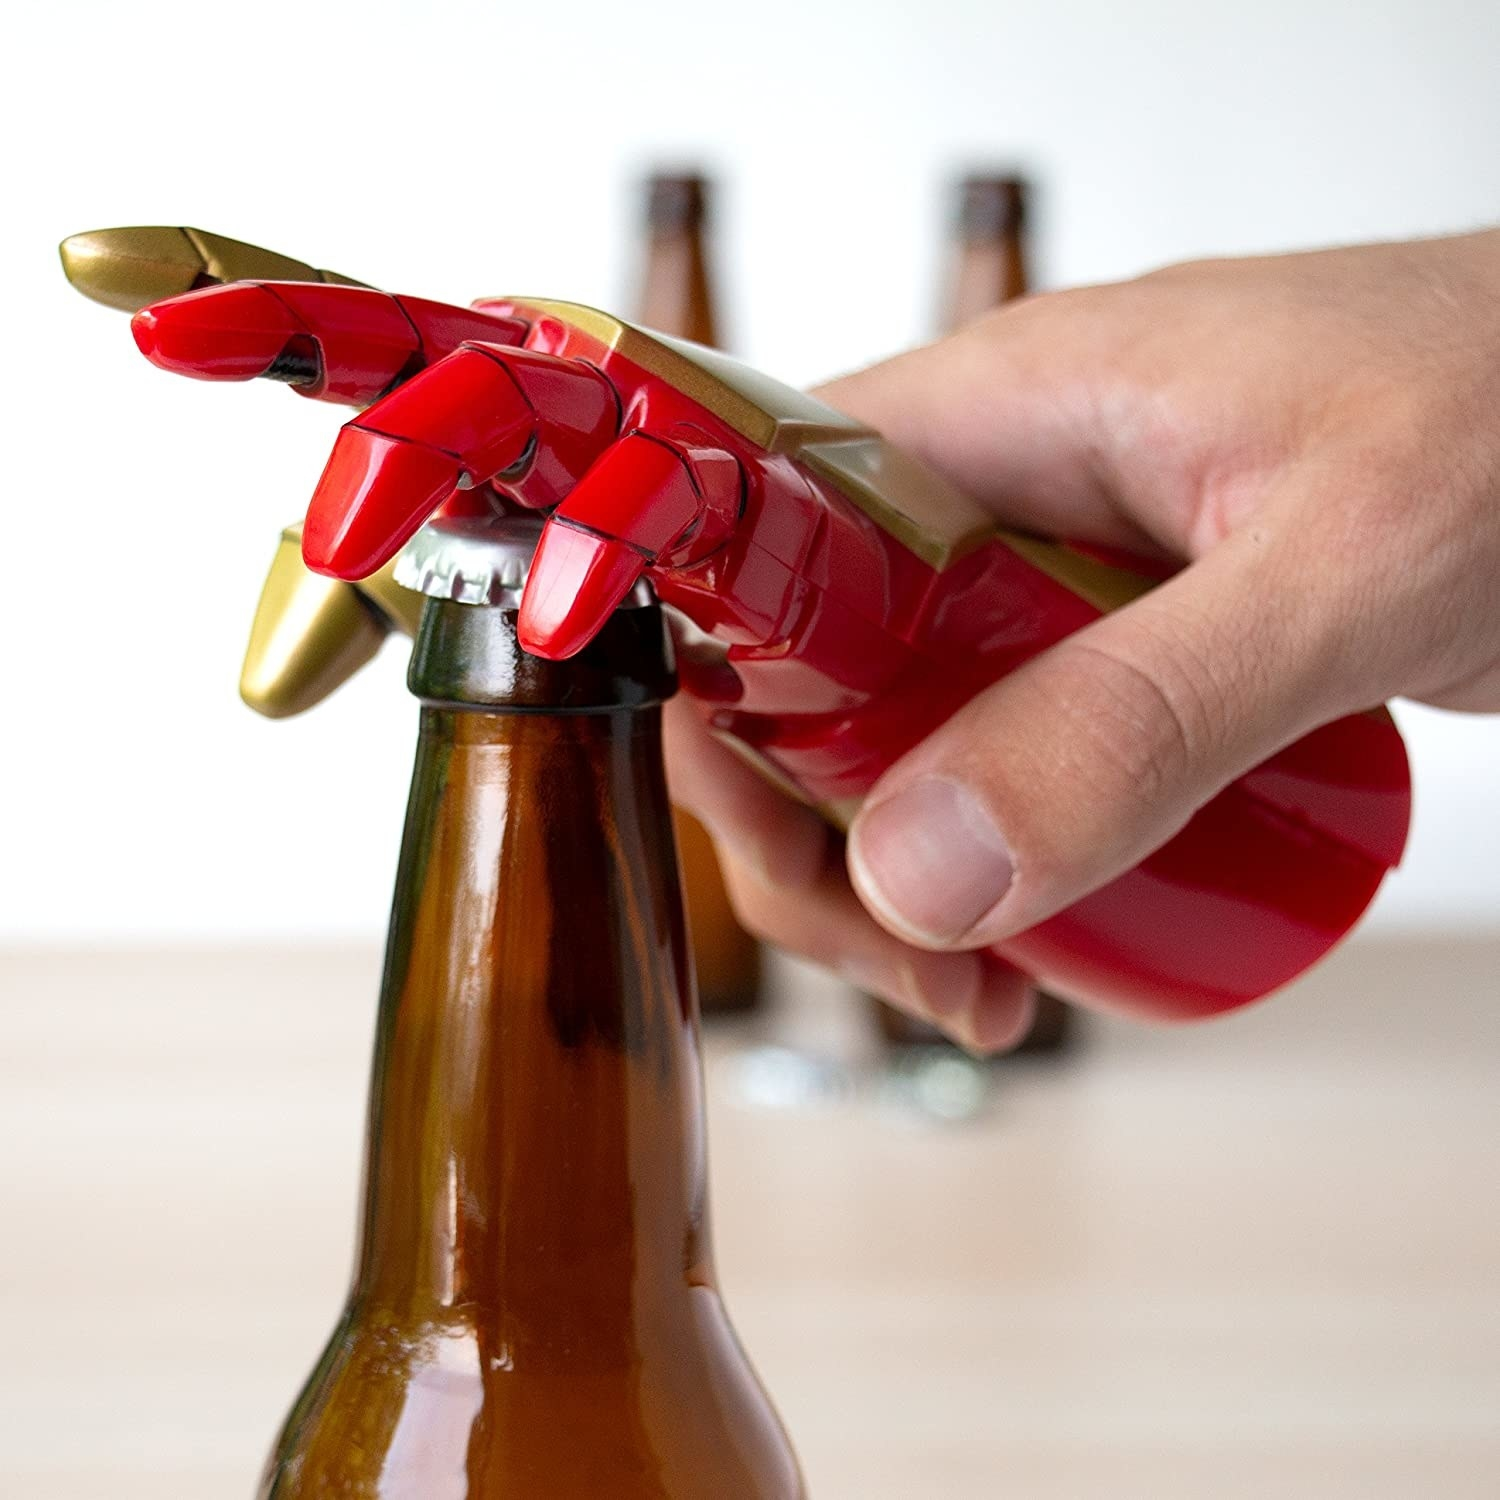 A person using the bottle opener to crack open a beer